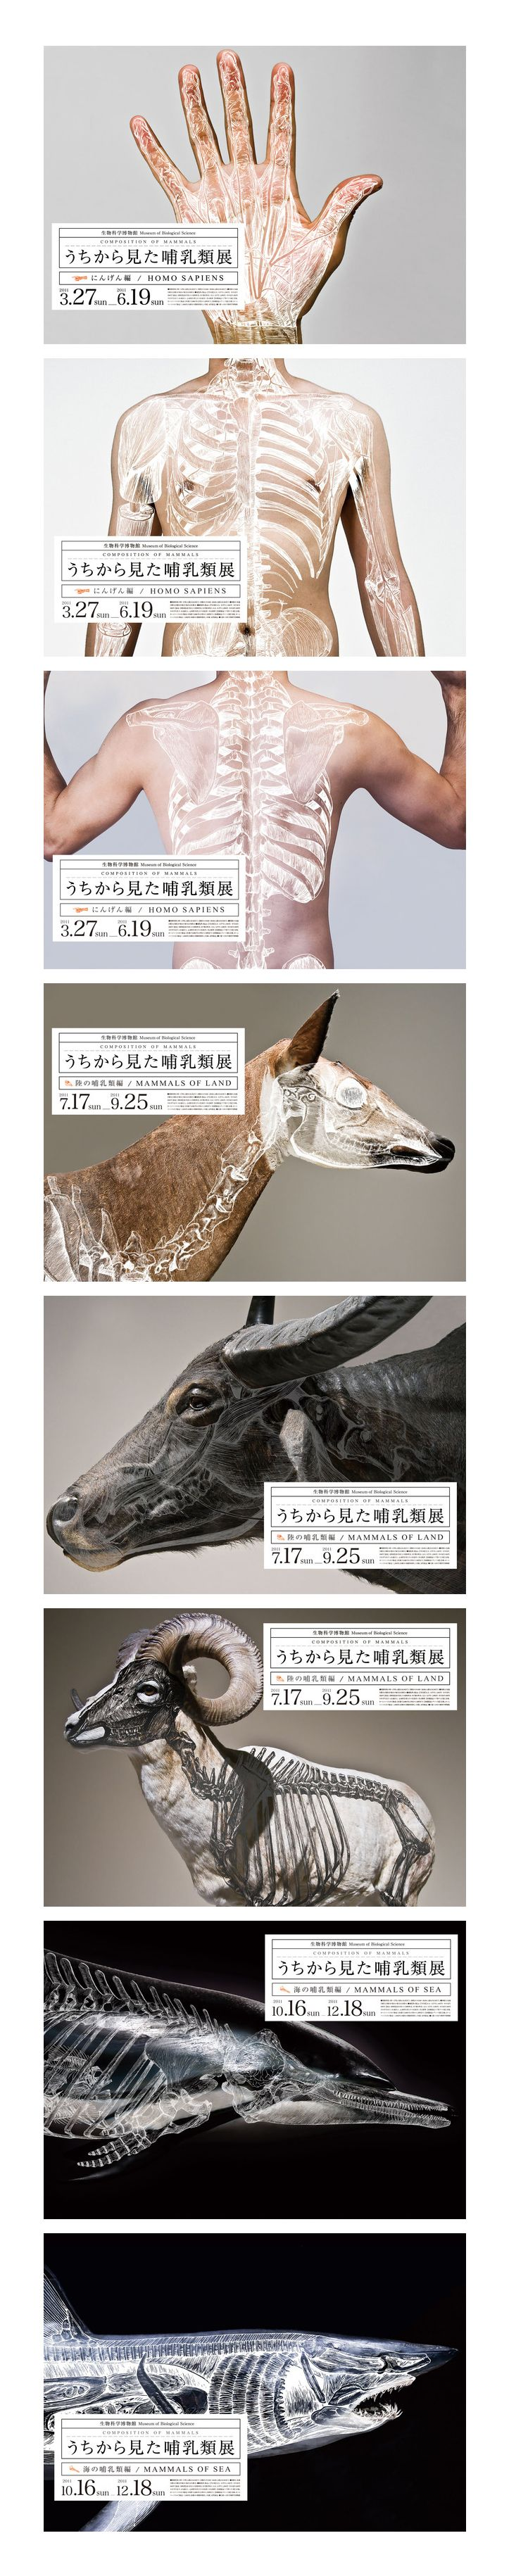 Composition of Mammals「うちから見た哺乳類展」 mock exhibition posters by Wataru Yoshida